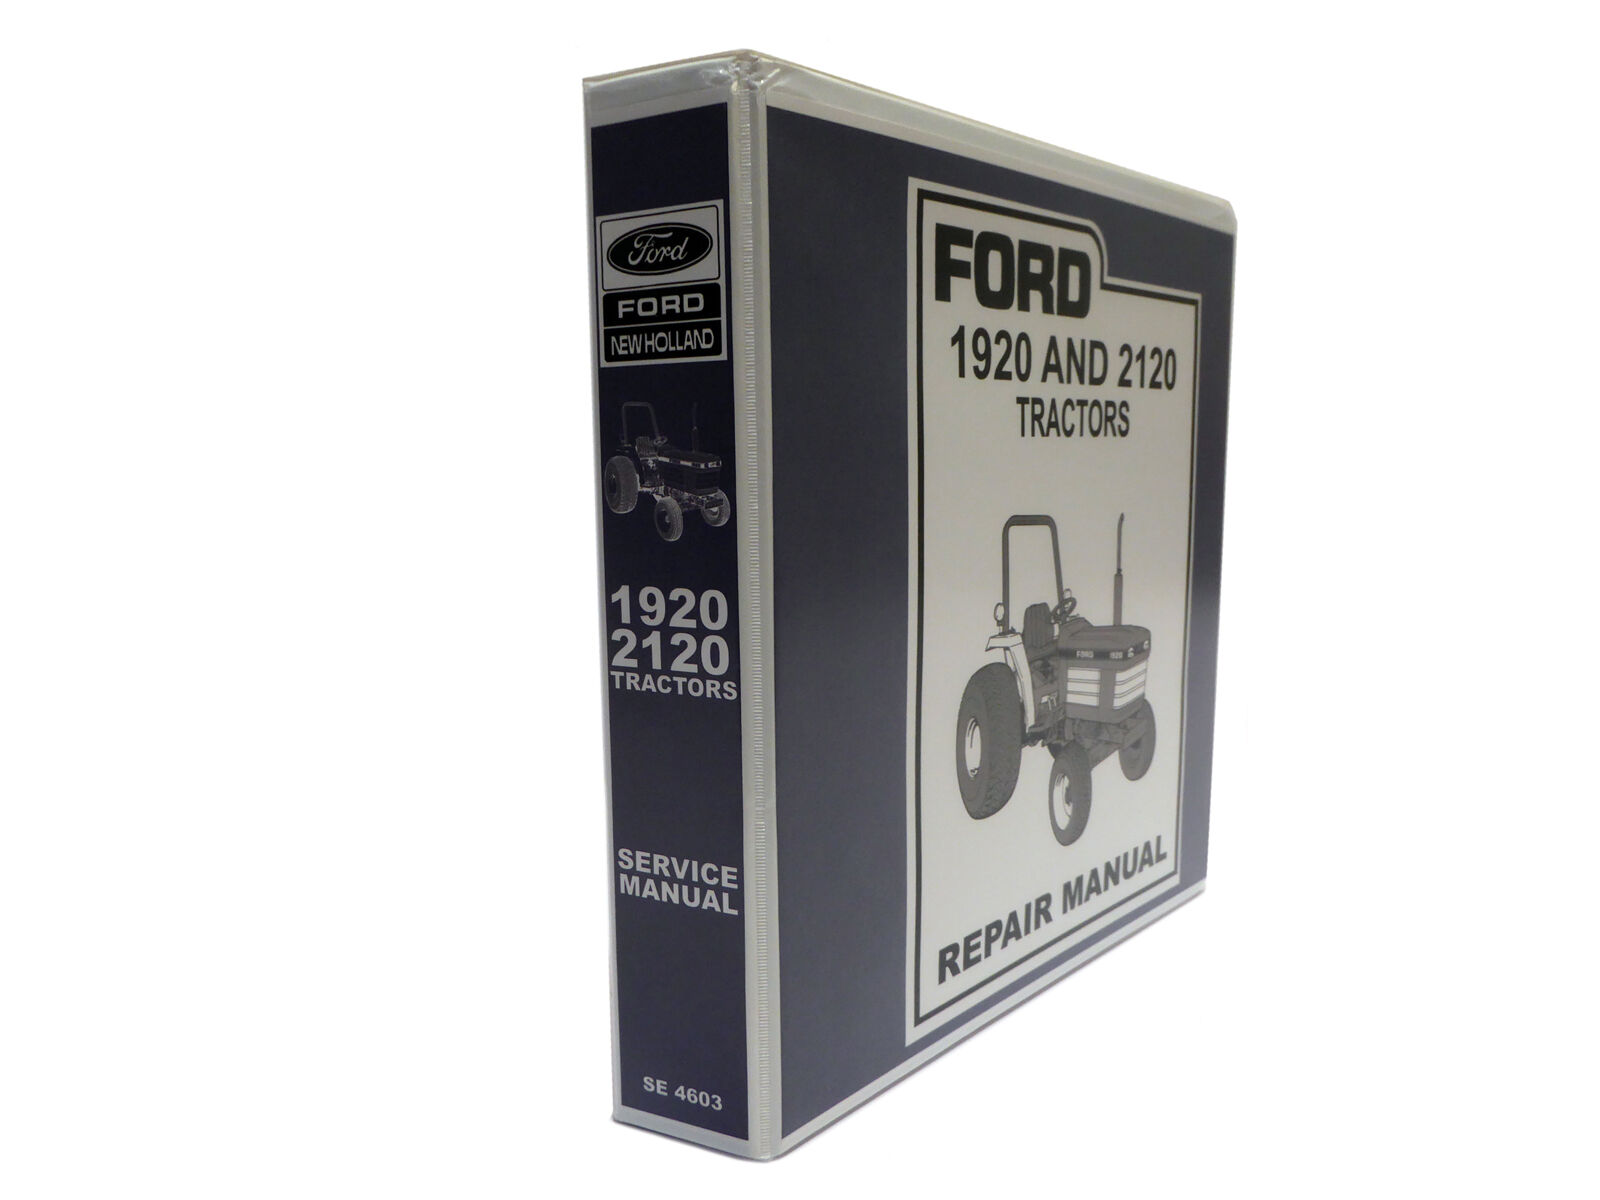 ford 1920 and 2120 tractor service repair manual book